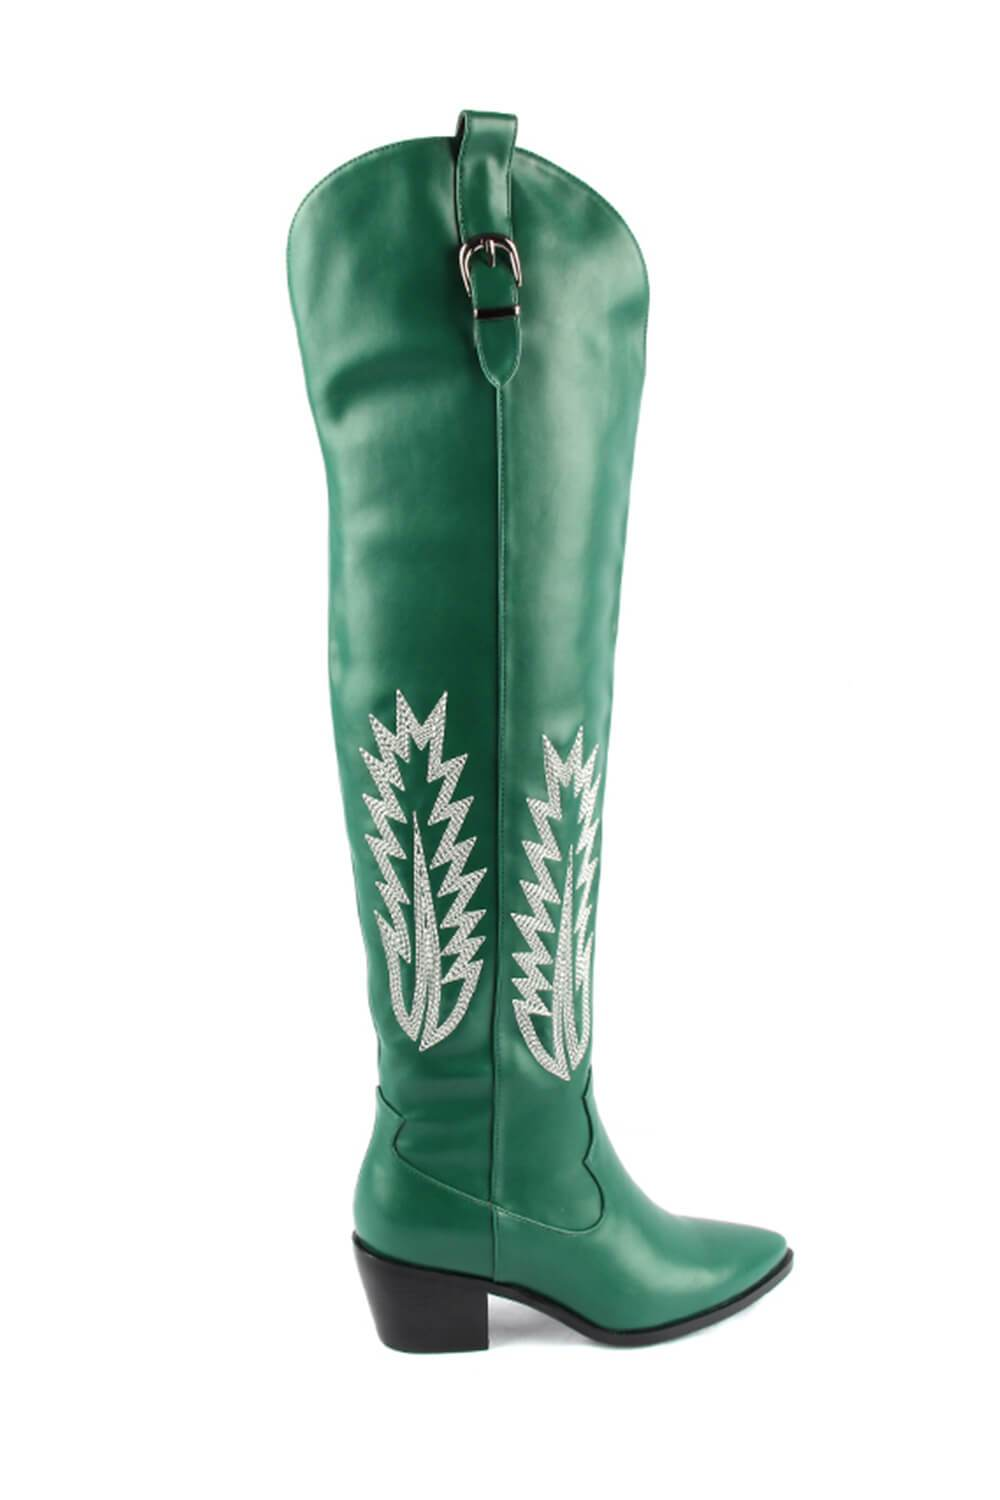 Green Western Knee High Block Heel Boots (4095662751803)